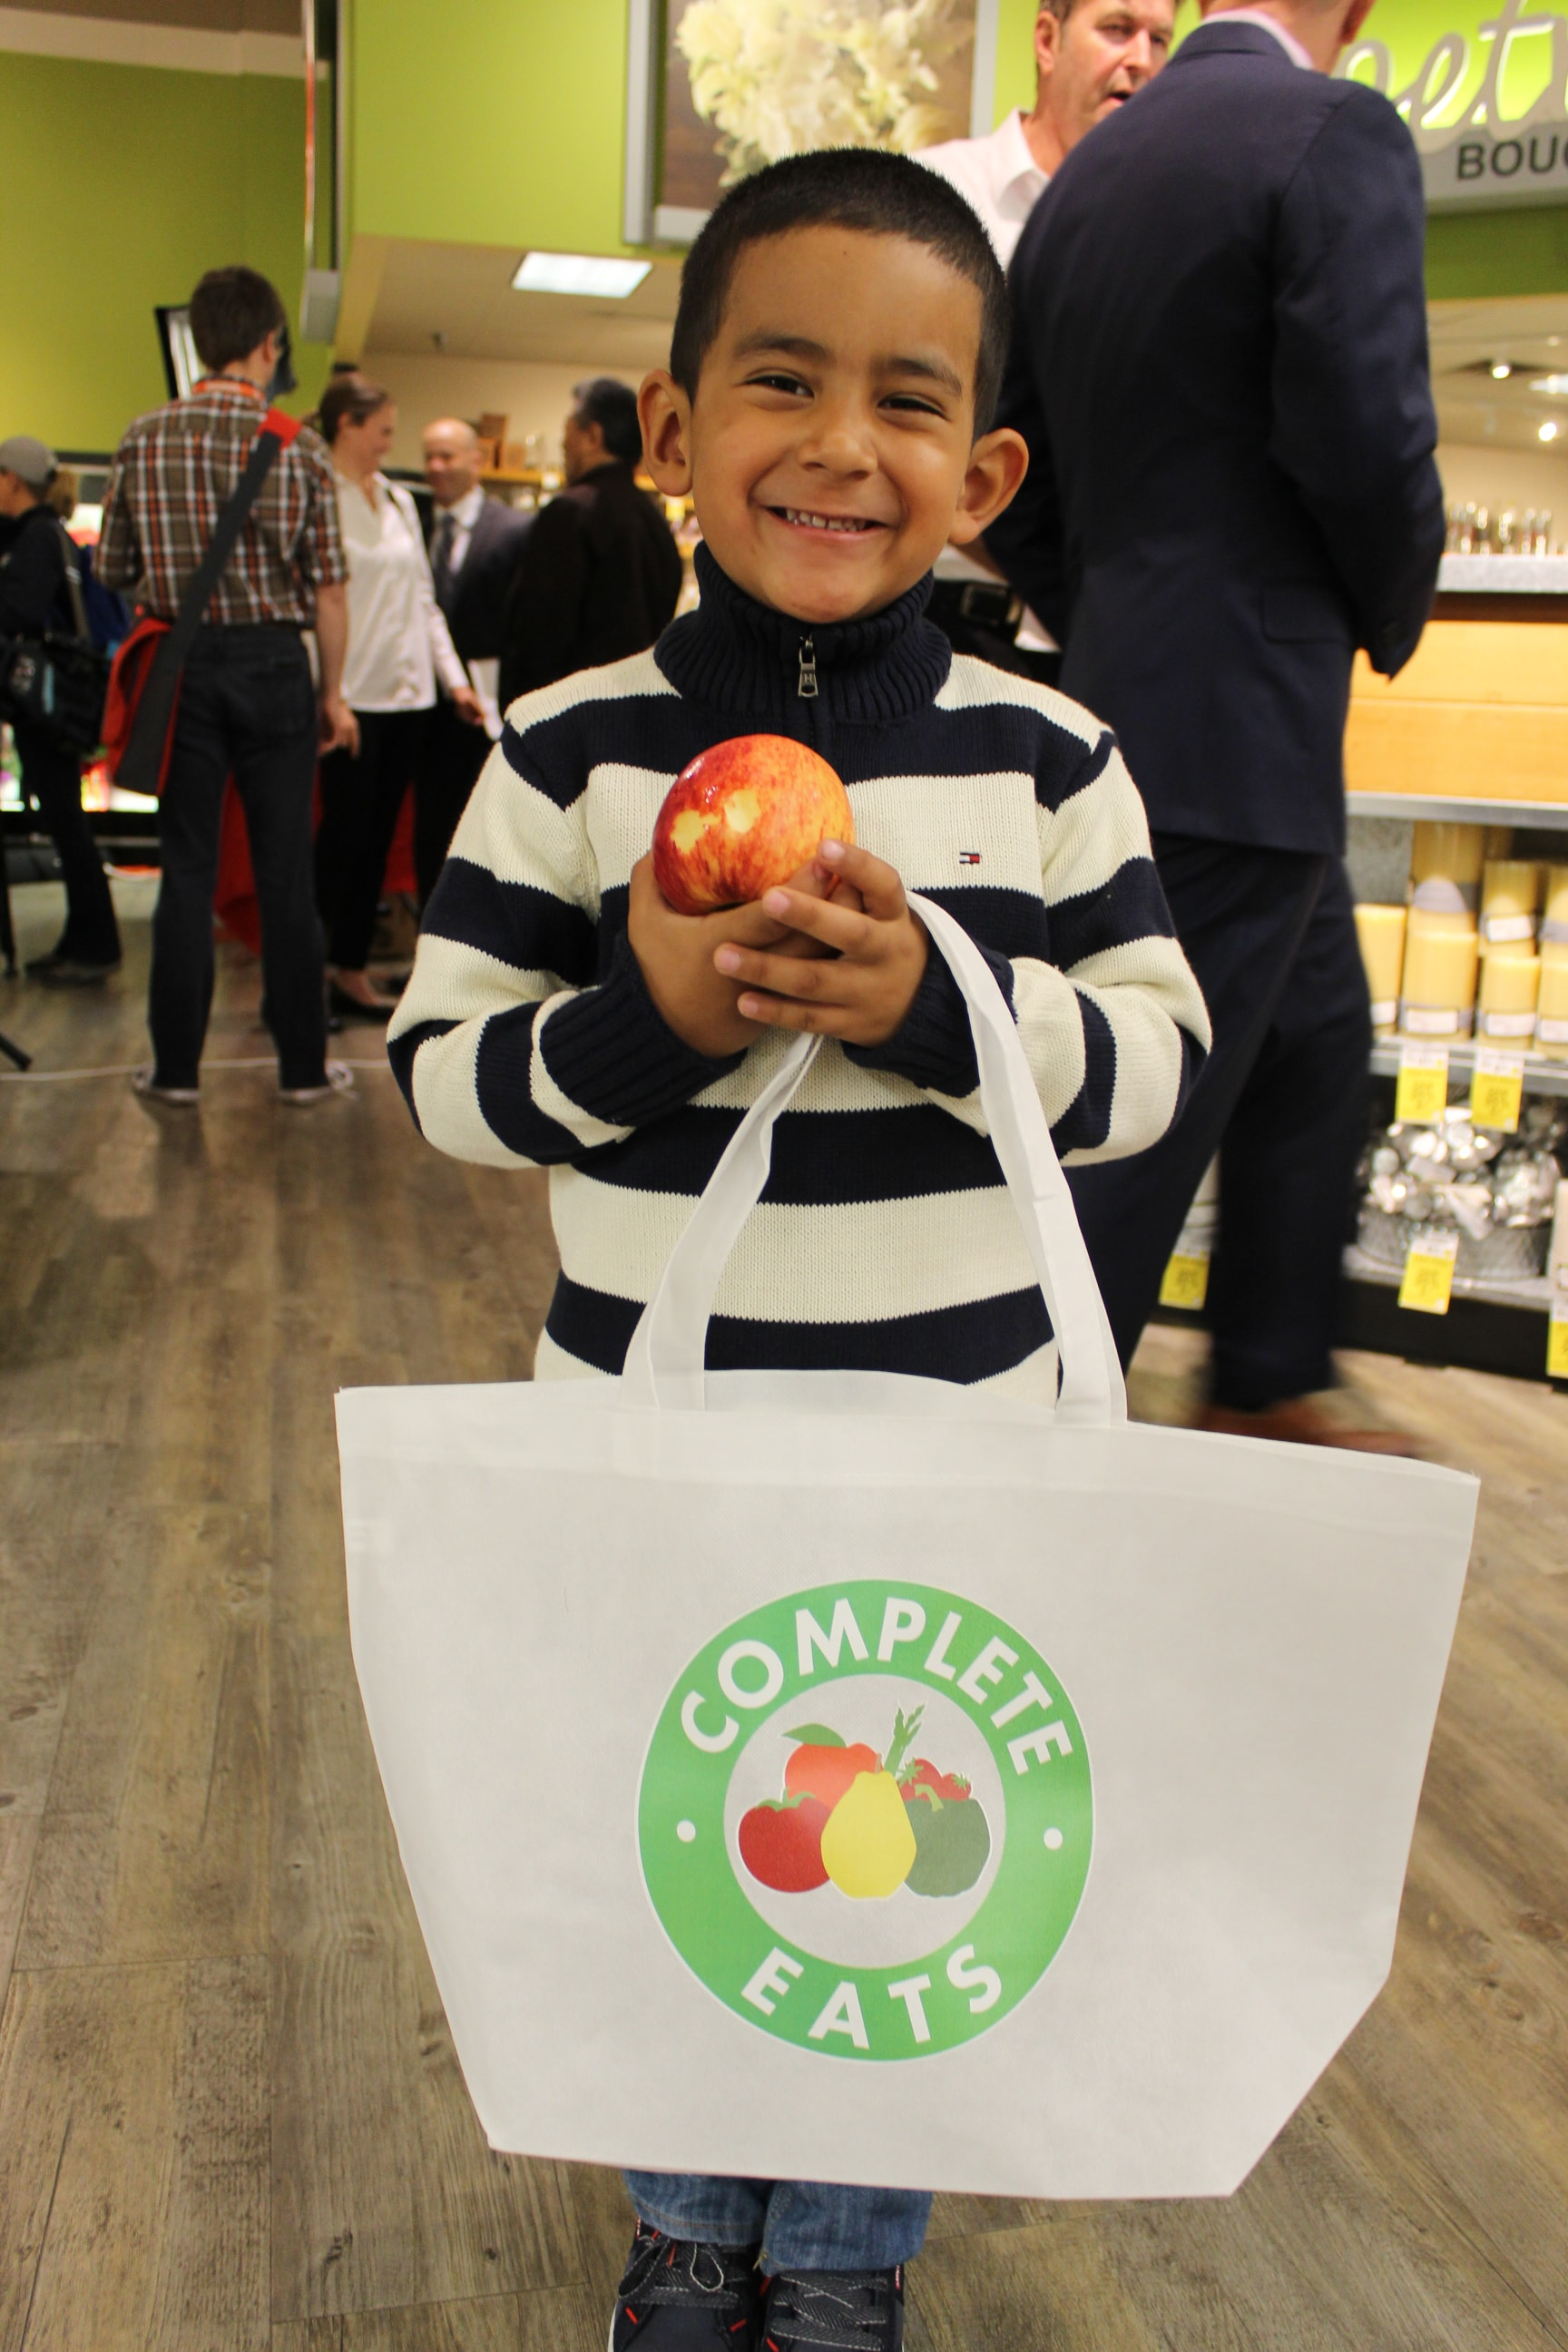 Little boy holding apple and Comple Eats shopping bag.